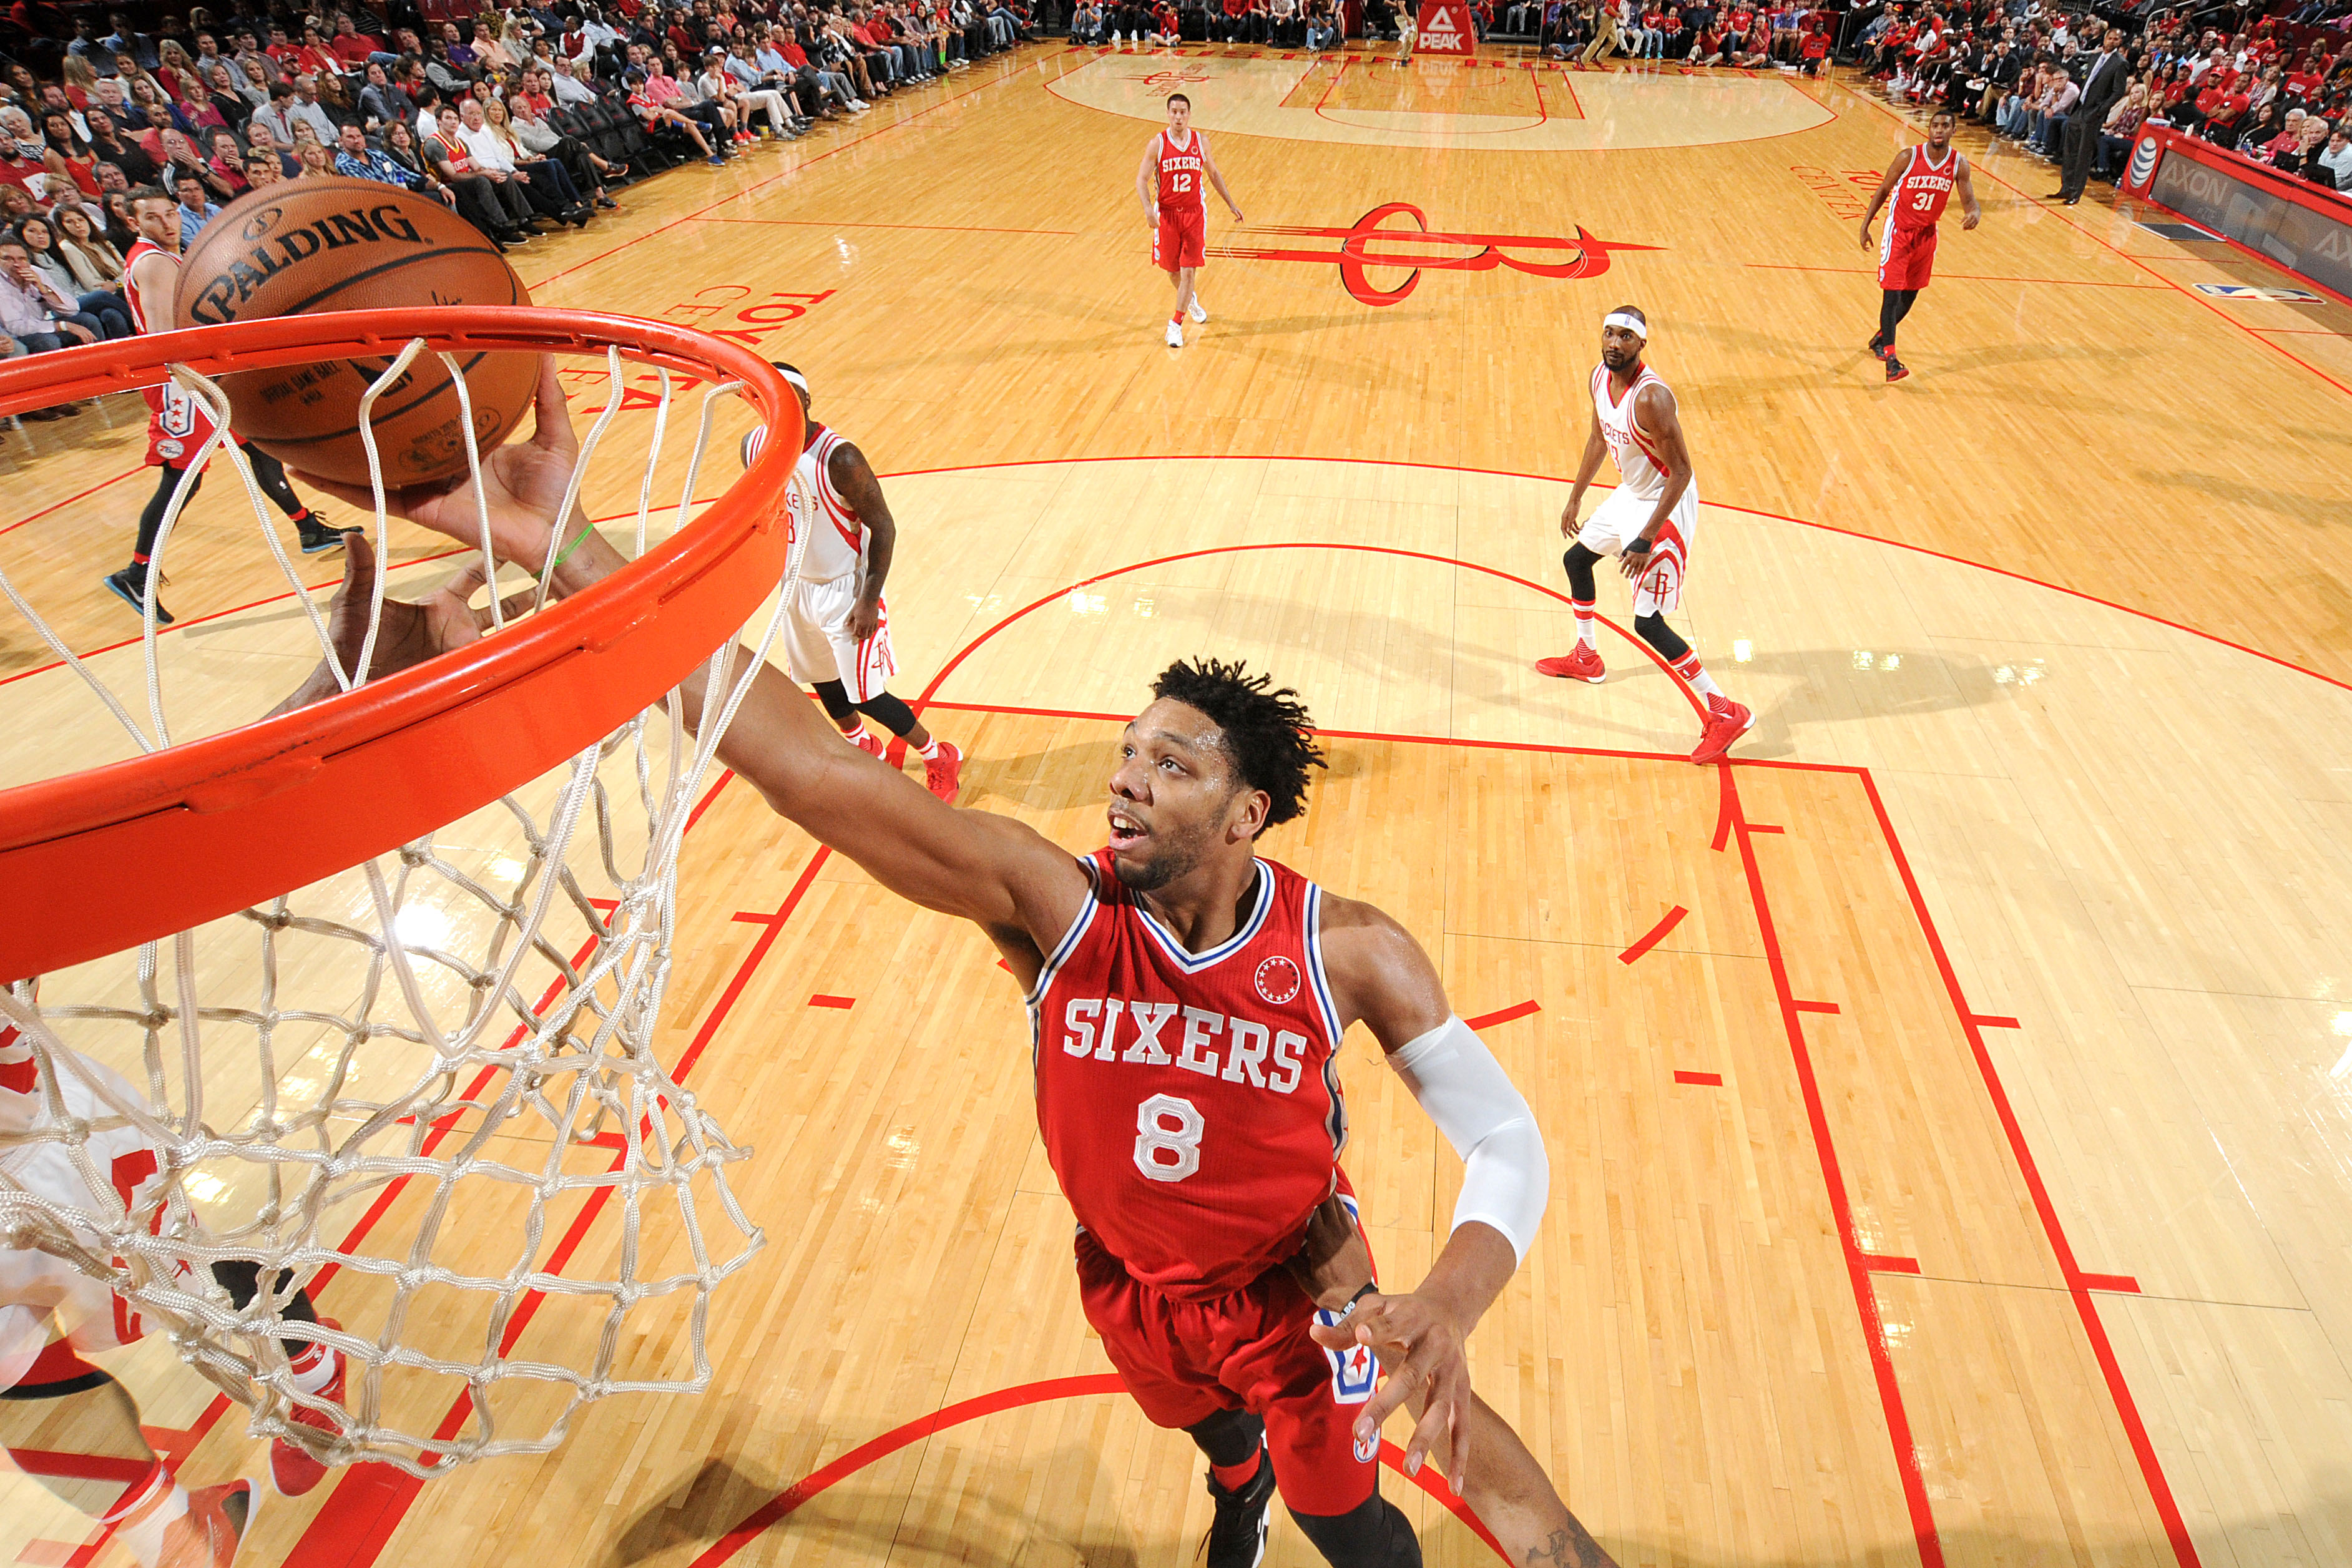 HOUSTON, TX - NOVEMBER 27: Jahlil Okafor #8 of the Philadelphia 76ers shoots the ball during the game against the Houston Rockets on November 27, 2015 at the Toyota Center in Houston, Texas. (Photo by Bill Baptist/NBAE via Getty Images)